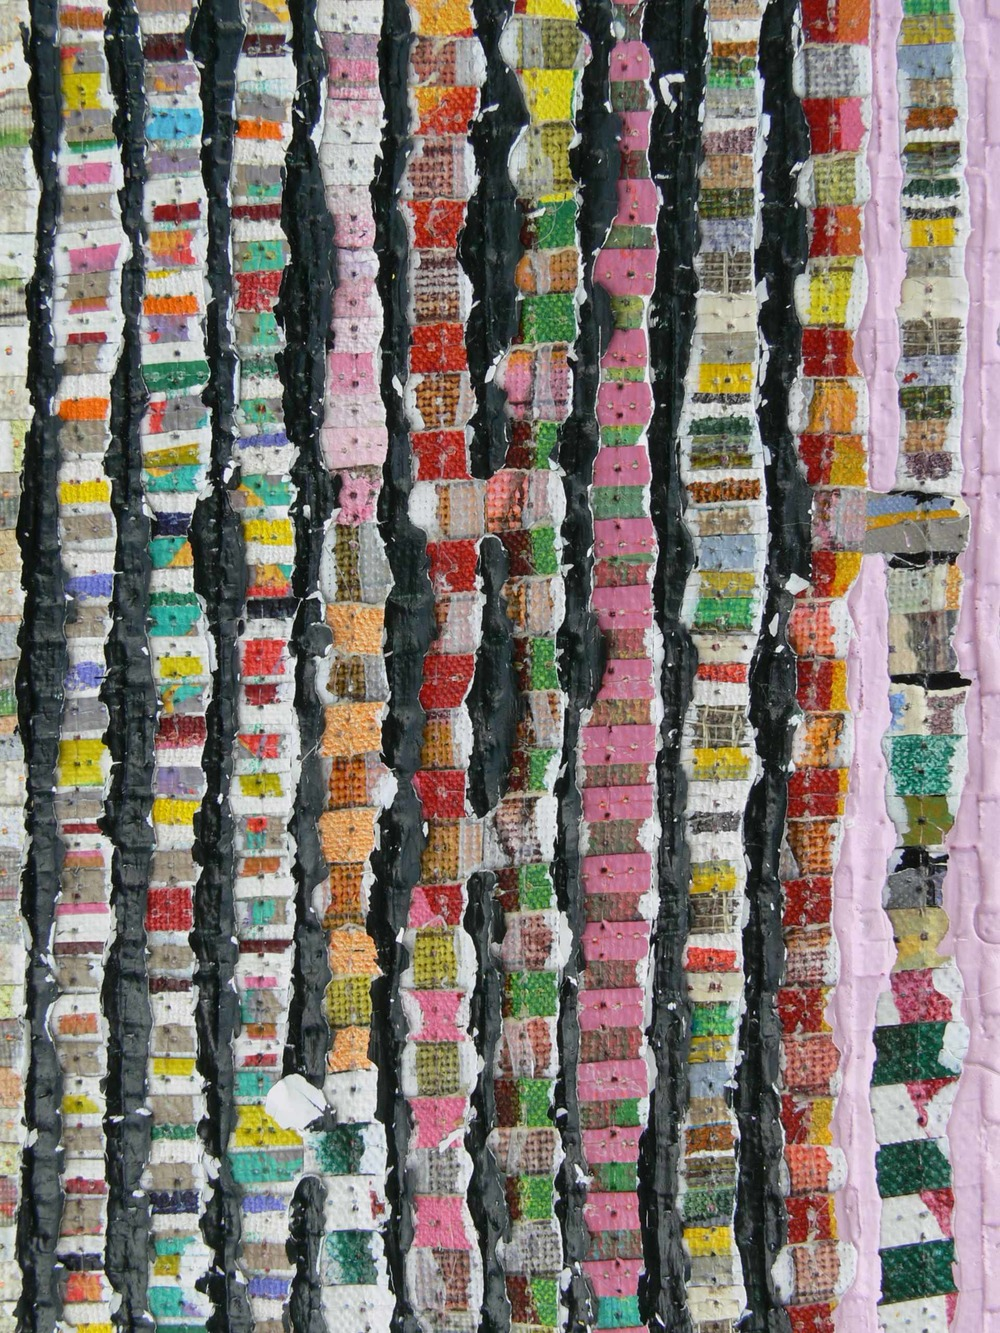 Eveline Kotai - DETAIL Karri Shift 3, 2014, mixed media stitched collage on linen, 20x140cm, Art Collective WA